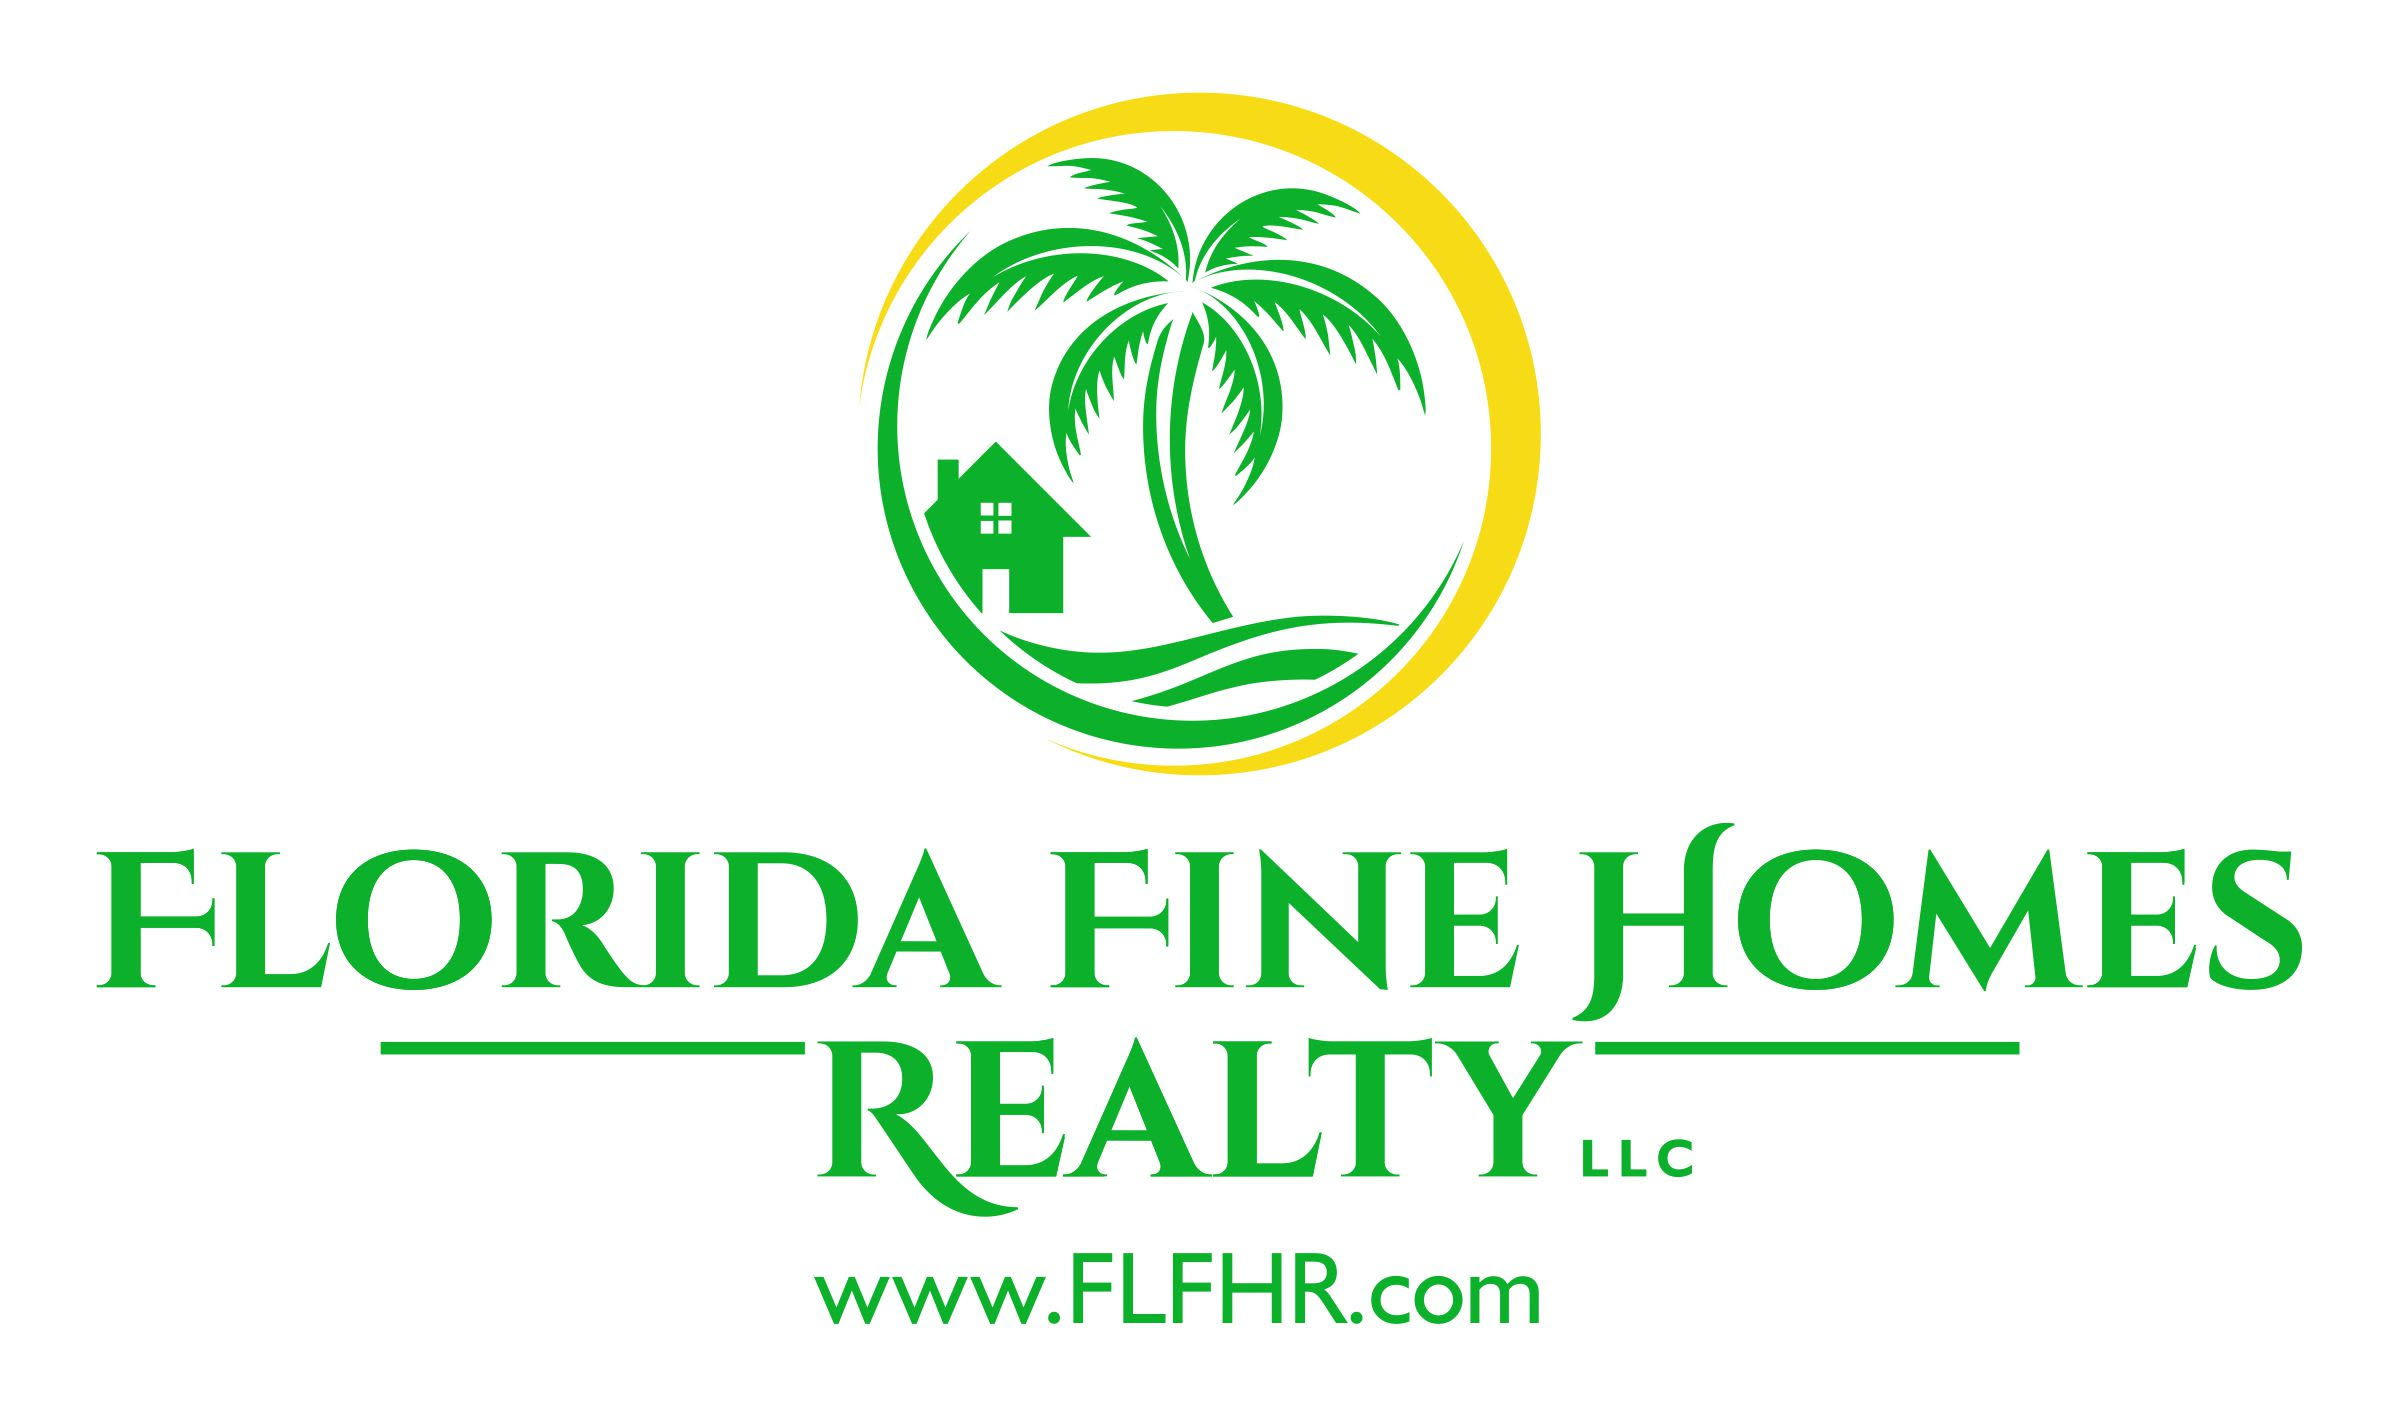 Florida Fine Homes Realty, LLC